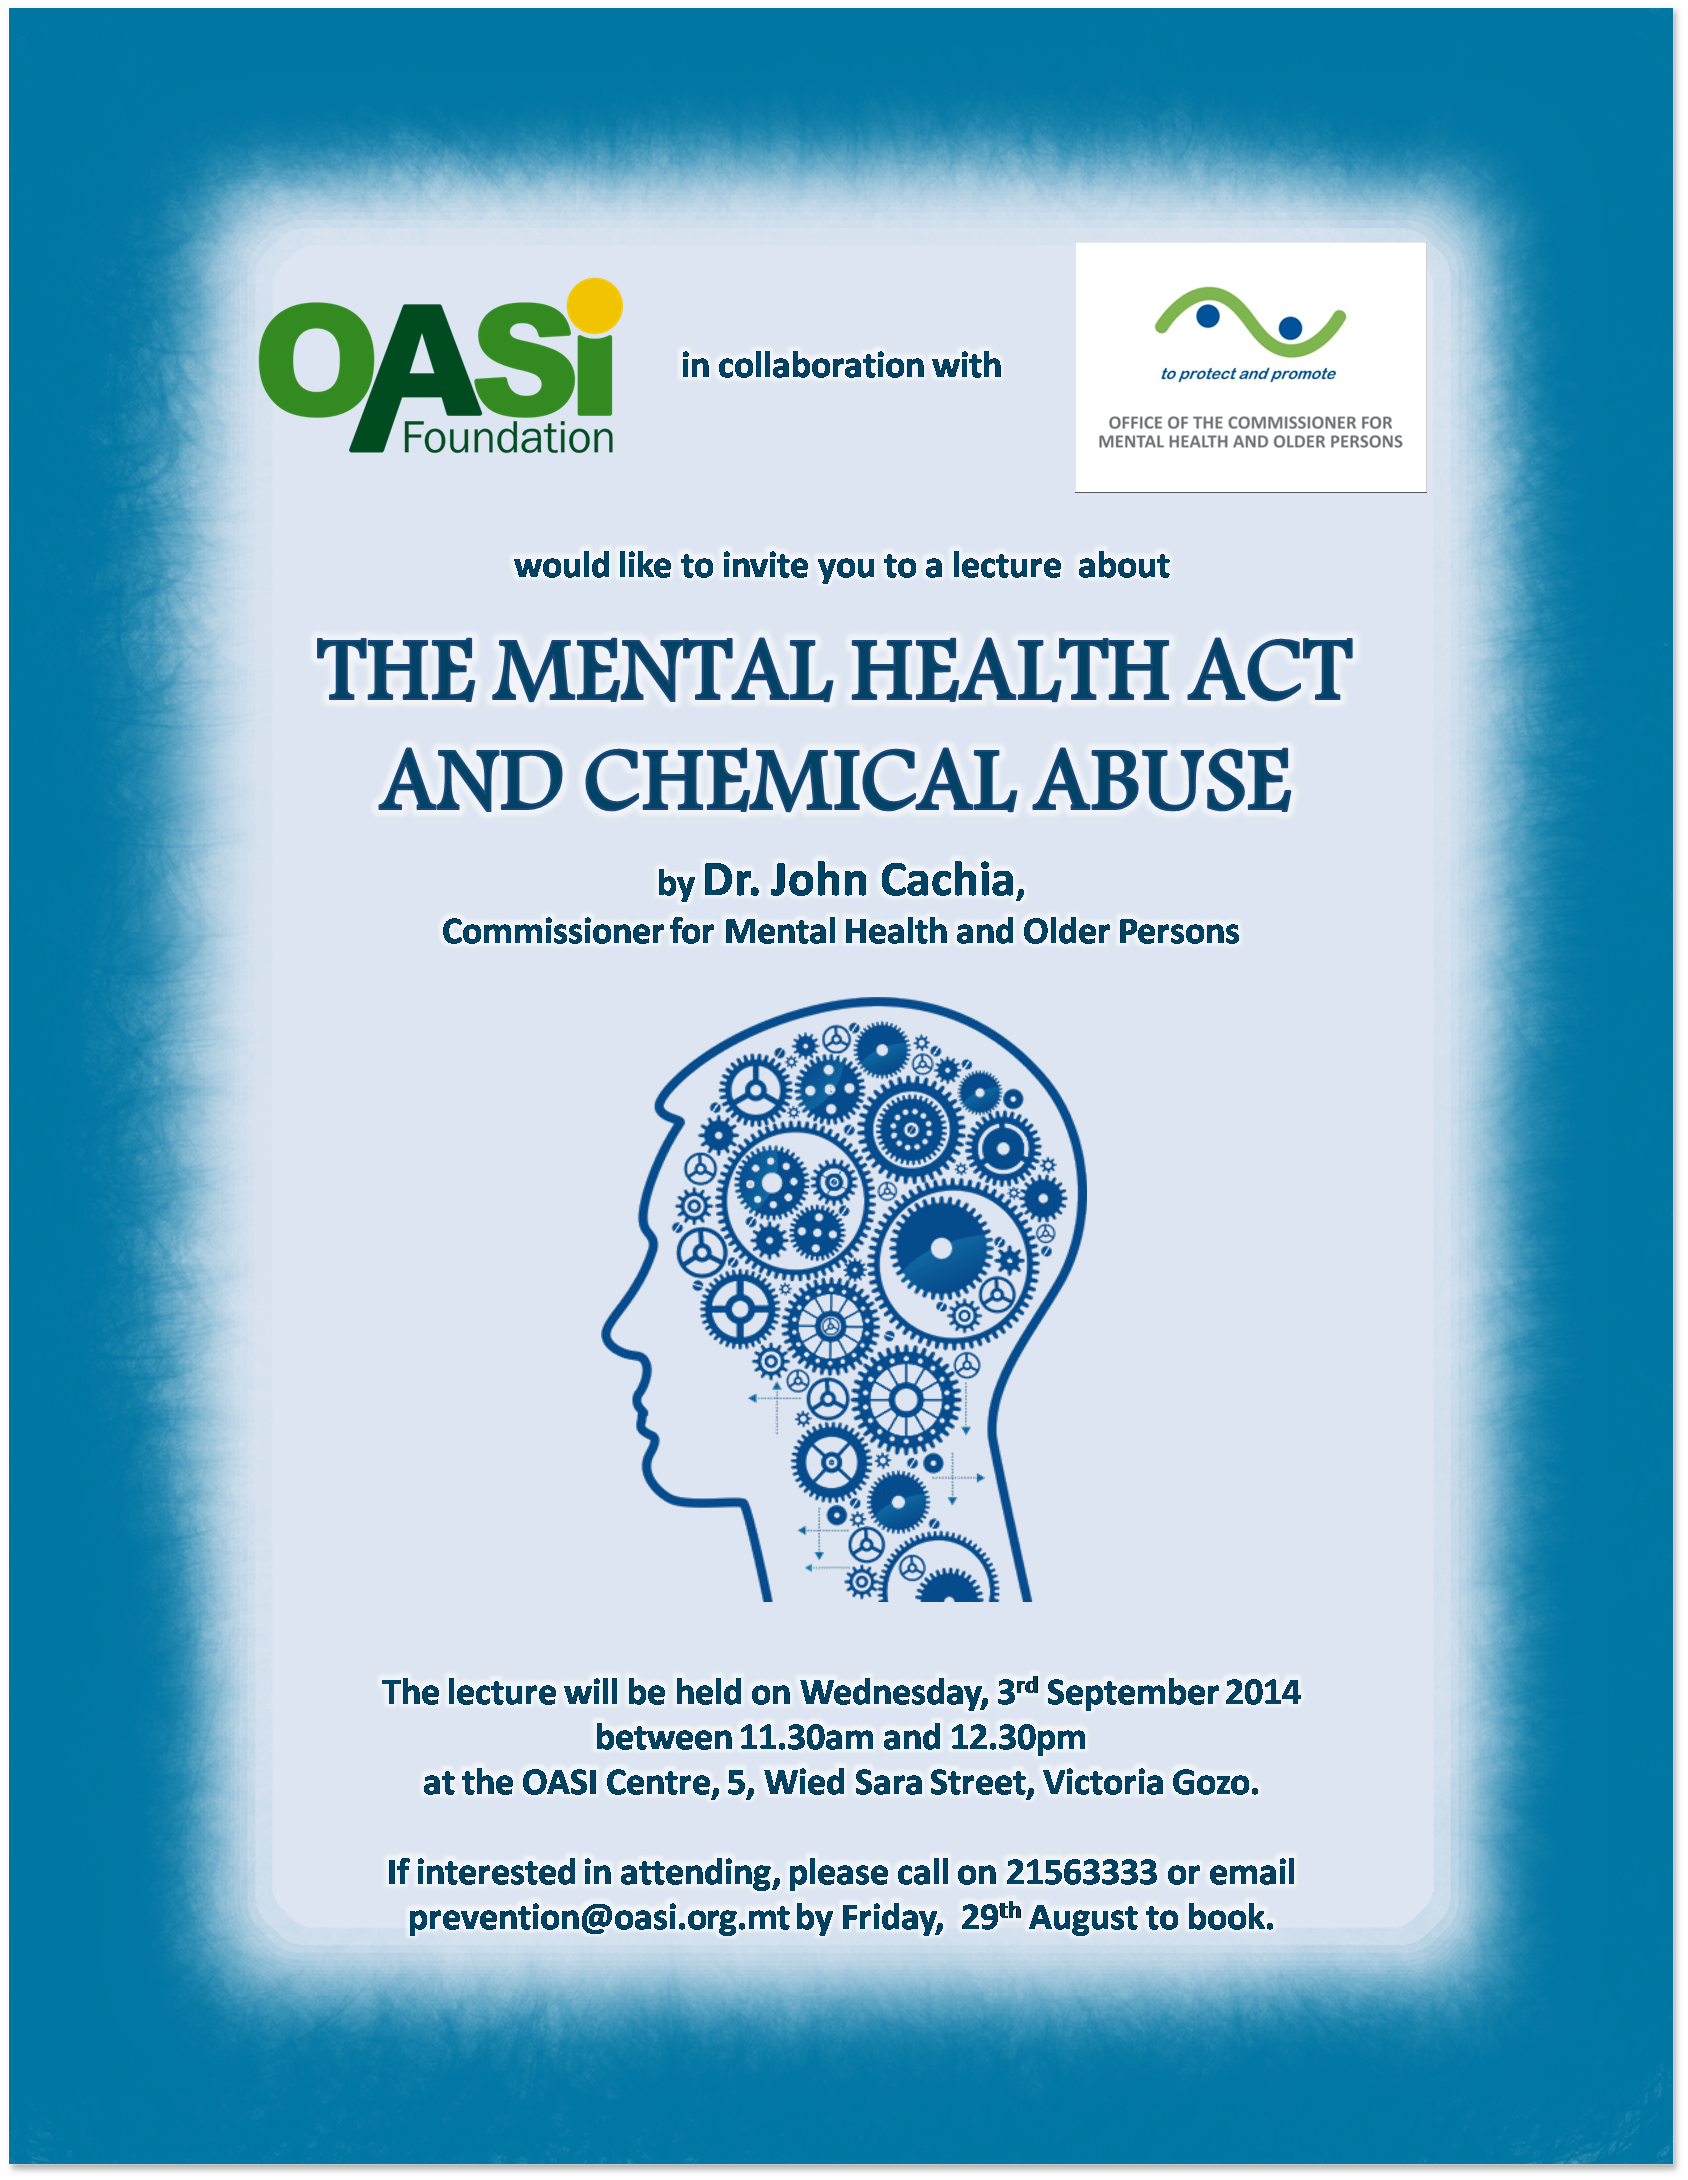 the mental health act and chemical misuse lecture poster